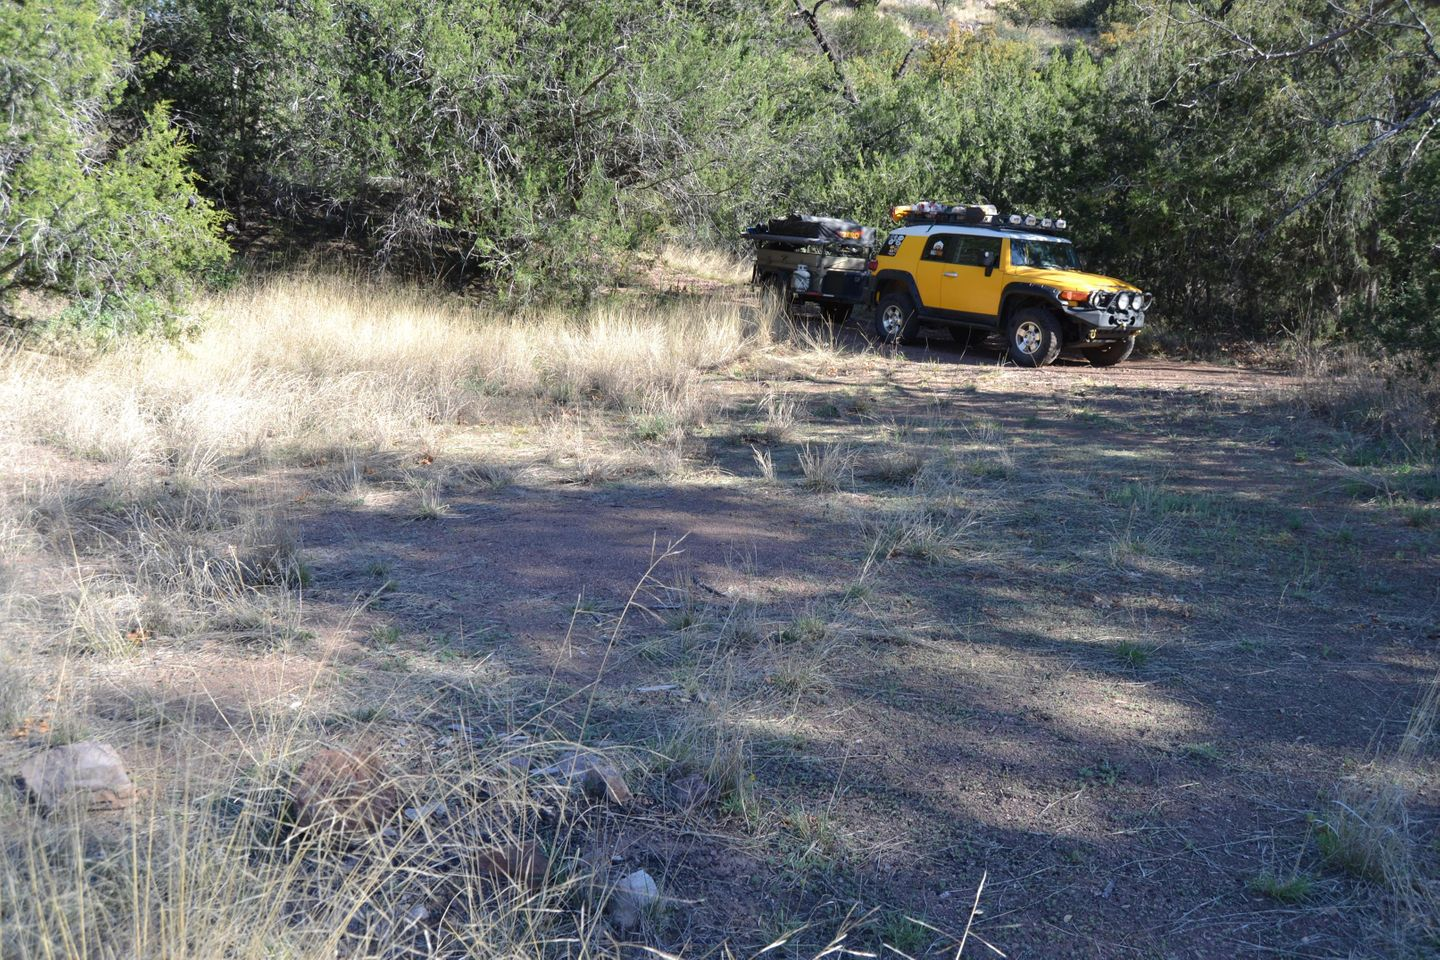 Jackson Cabin/Muleshoe Ranch Road - Waypoint 17: Sycamore Canyon Camp Site(s)